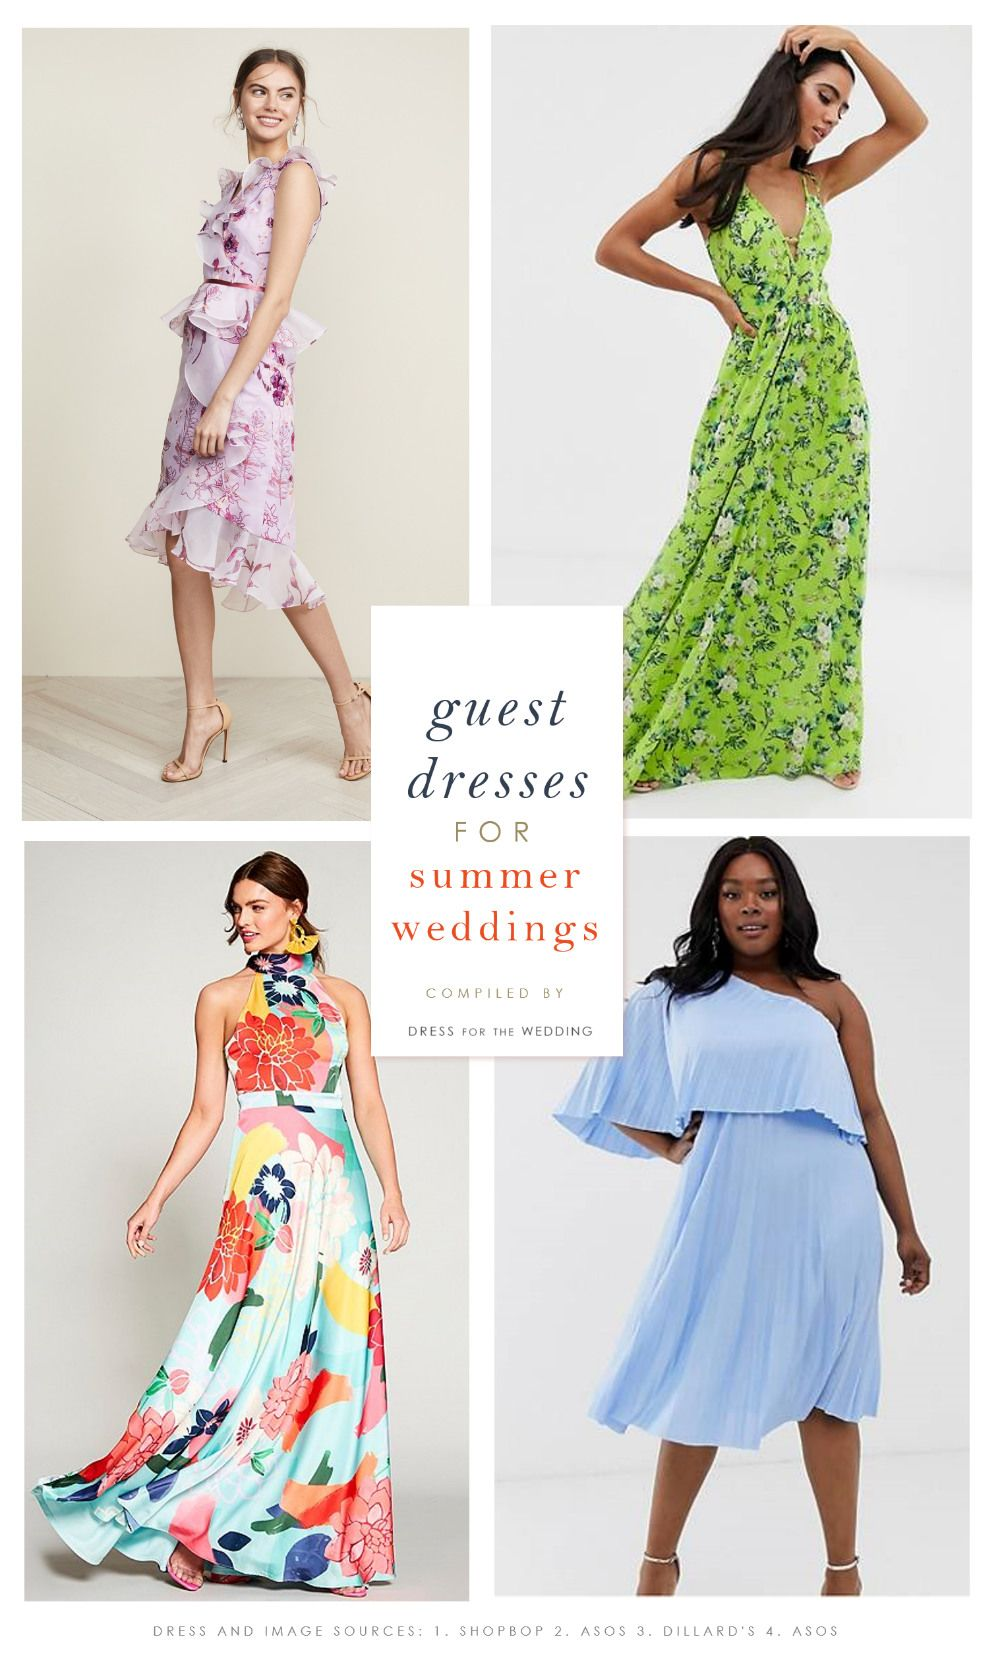 Summer Wedding Guest Dresses Dress For The Wedding Wedding Guest Dress Summer Wedding Guest Dress Styles Wedding Guest Dress